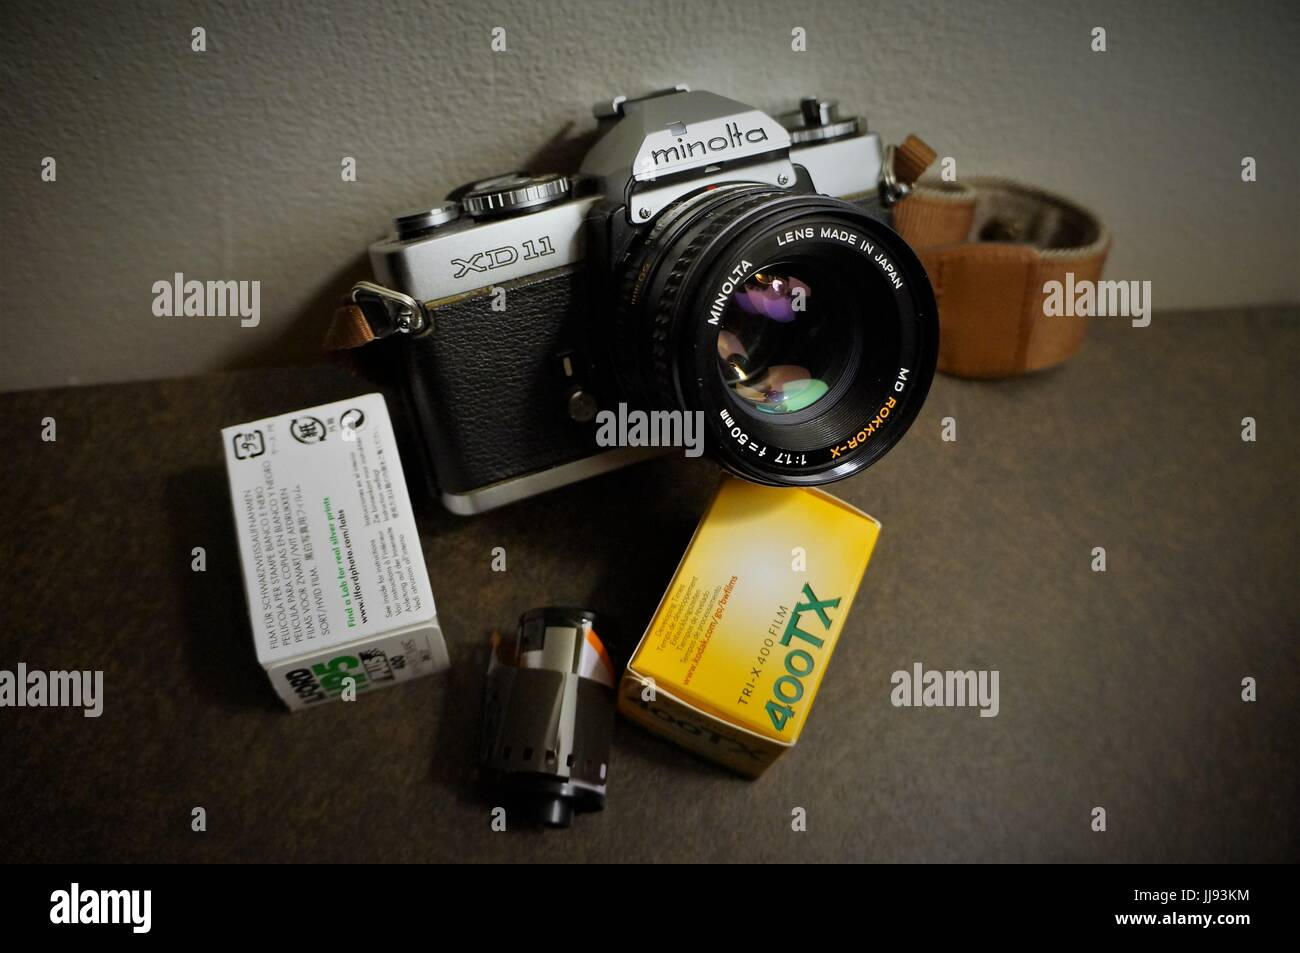 Minolta XD11 35mm camera with 50mm f1.7 lens and rolls of film - Stock Image